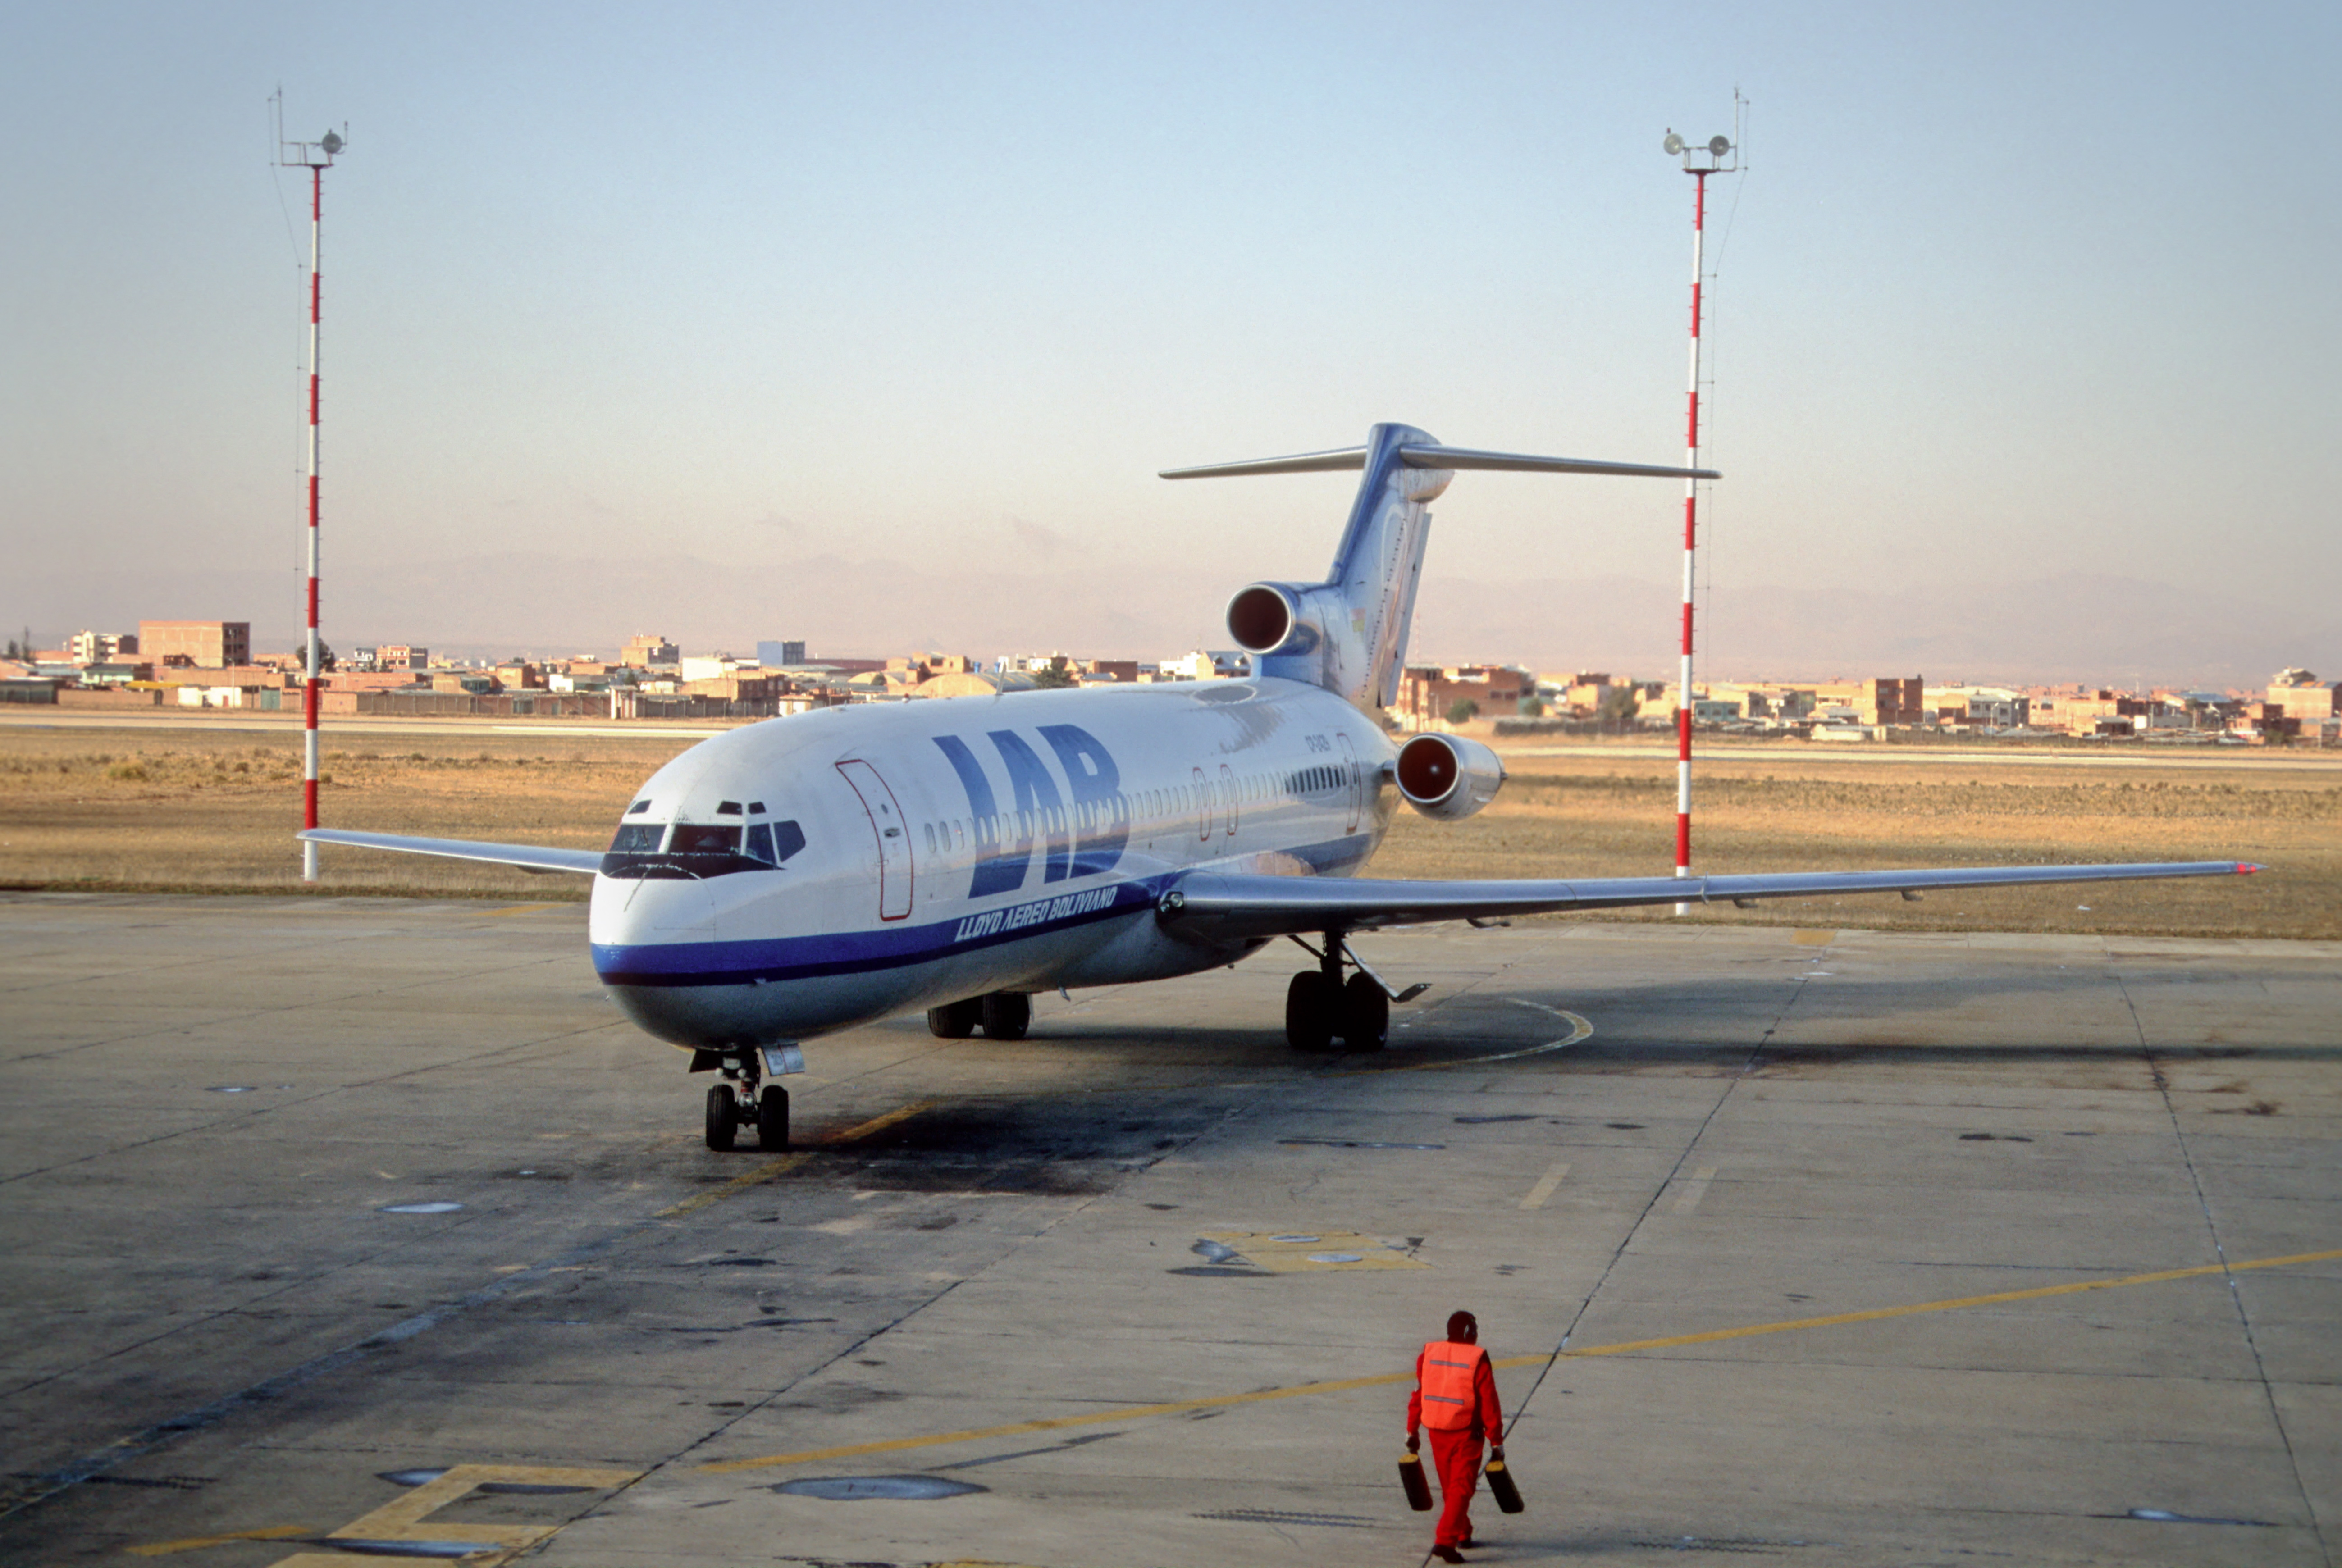 File:325am - LAB Boeing 727; [email protected];02.10.